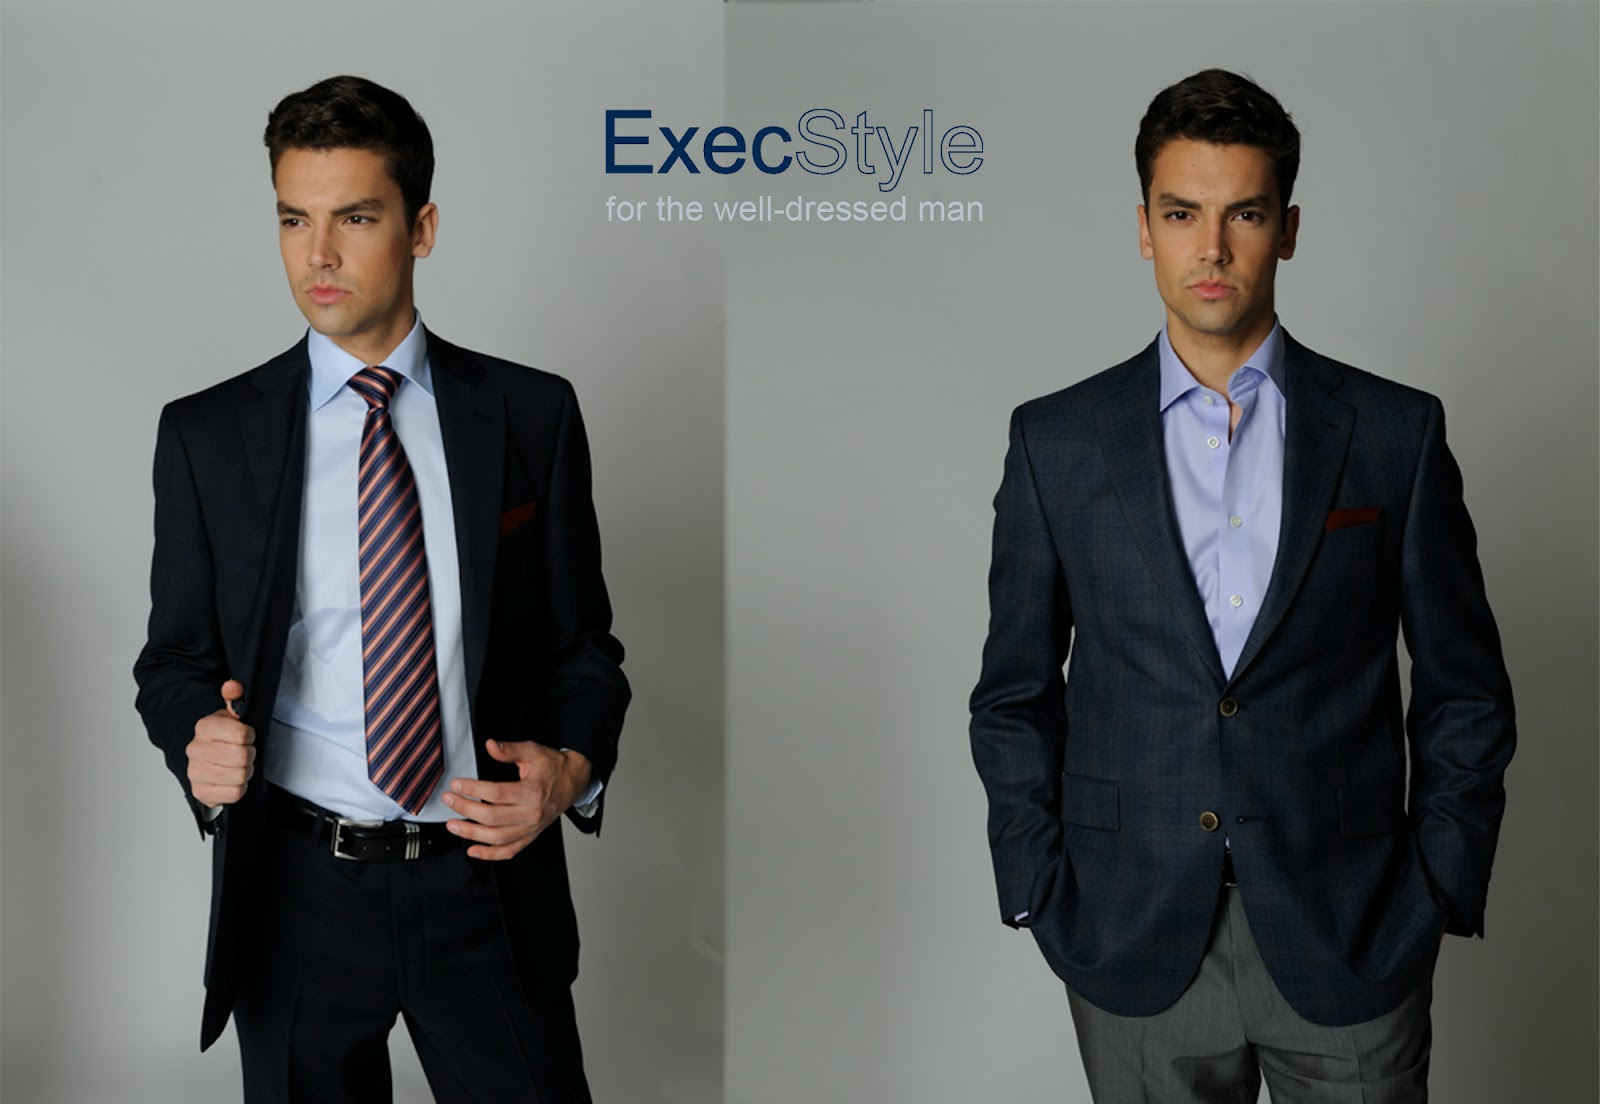 execstyle com fashion guide for the well dressed man how do you execstyle com fashion guide for the well dressed man how do you dress casual smart casual or business classic